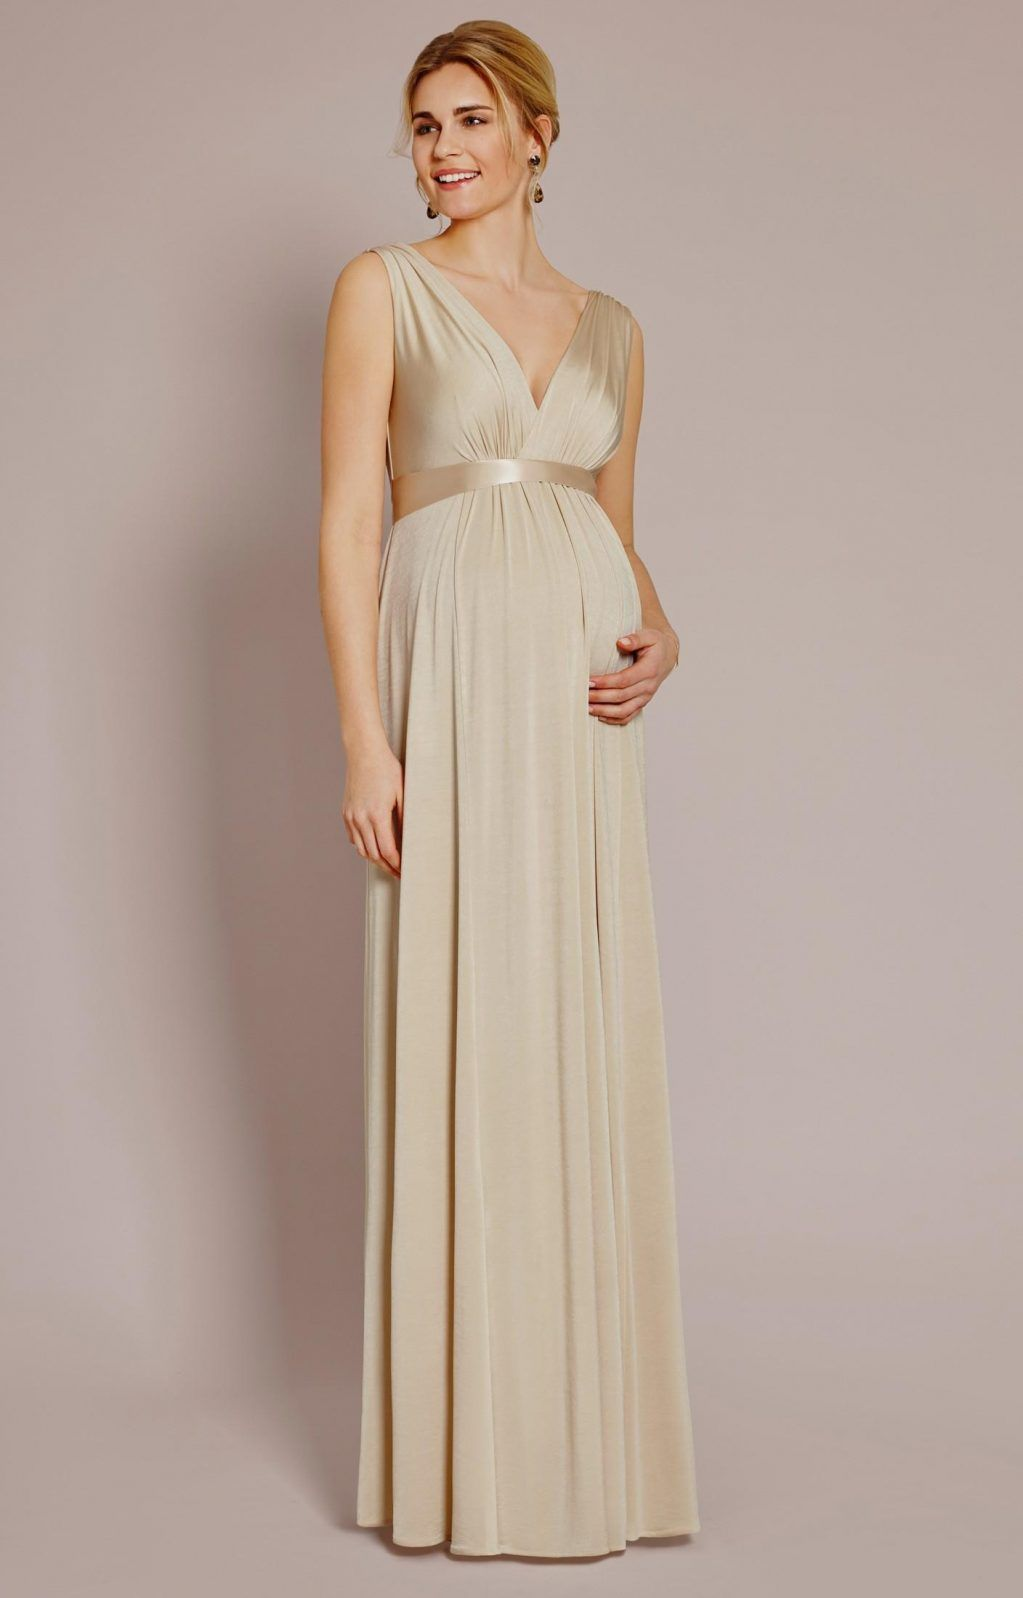 2019 year lifestyle- Wedding Pregnant dresses uk pictures